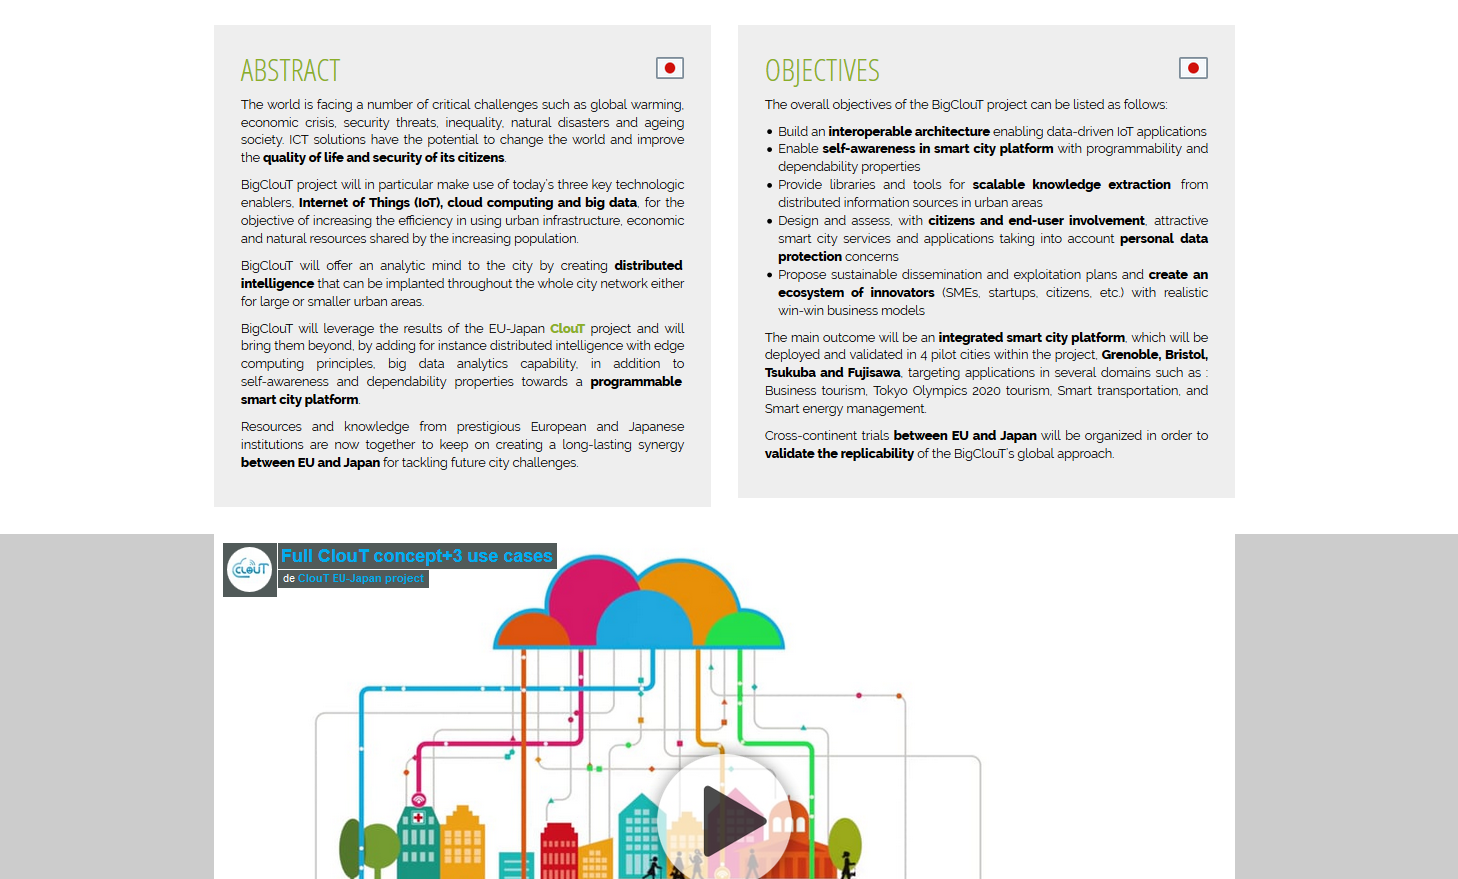 One page public website - Abstract, Objectives, video